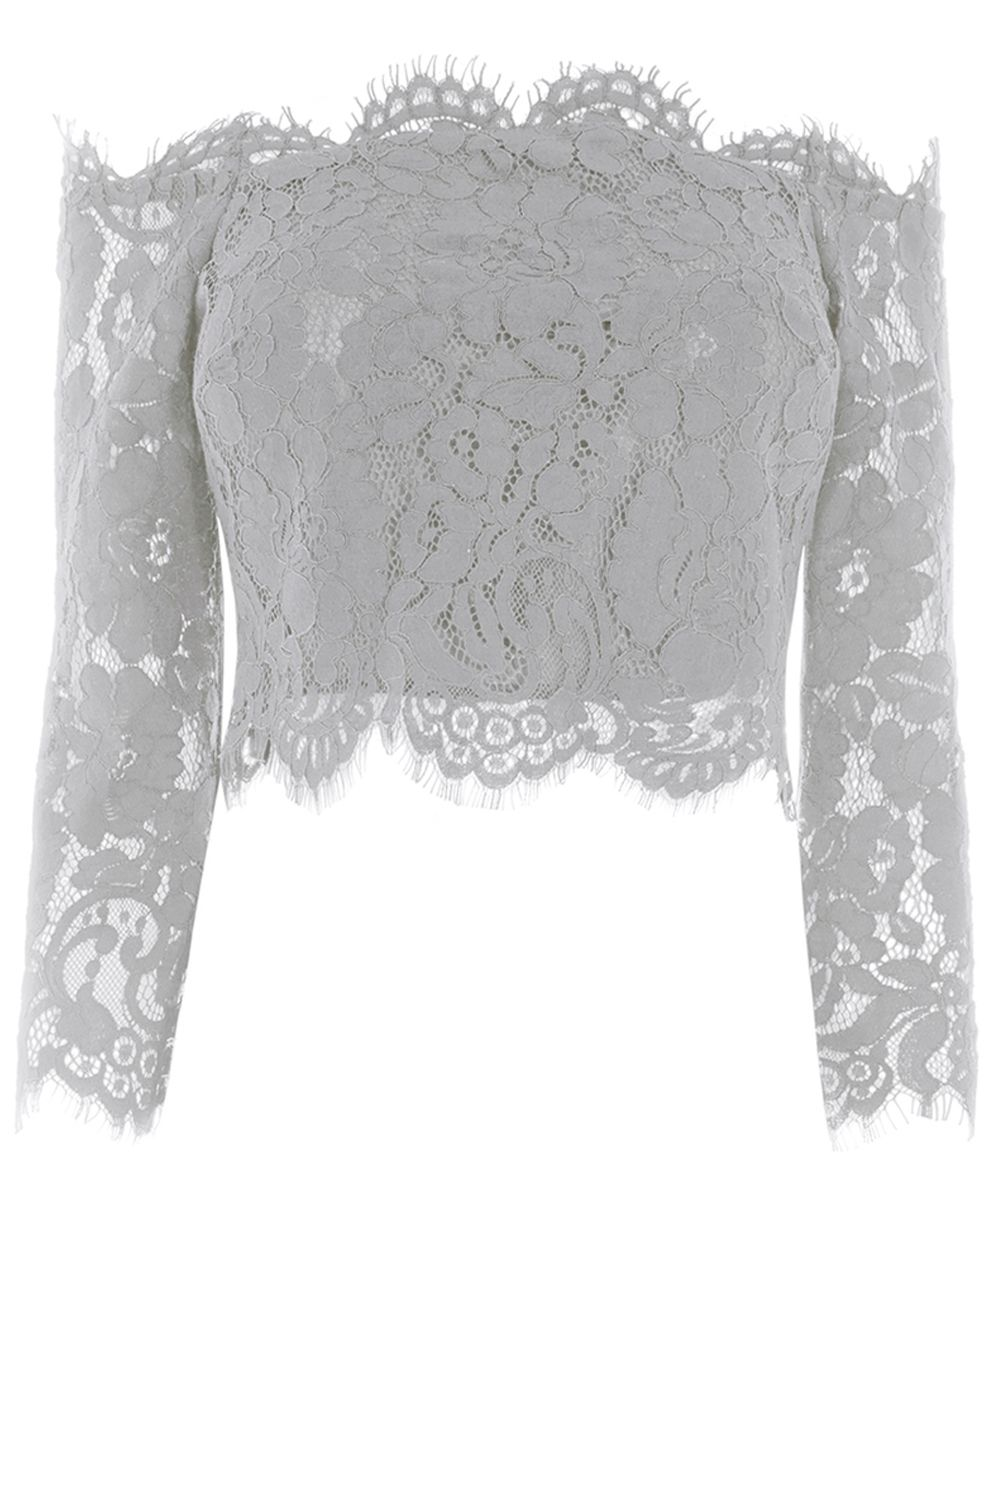 Coast Marr Lace Bridesmaids Top, Silver